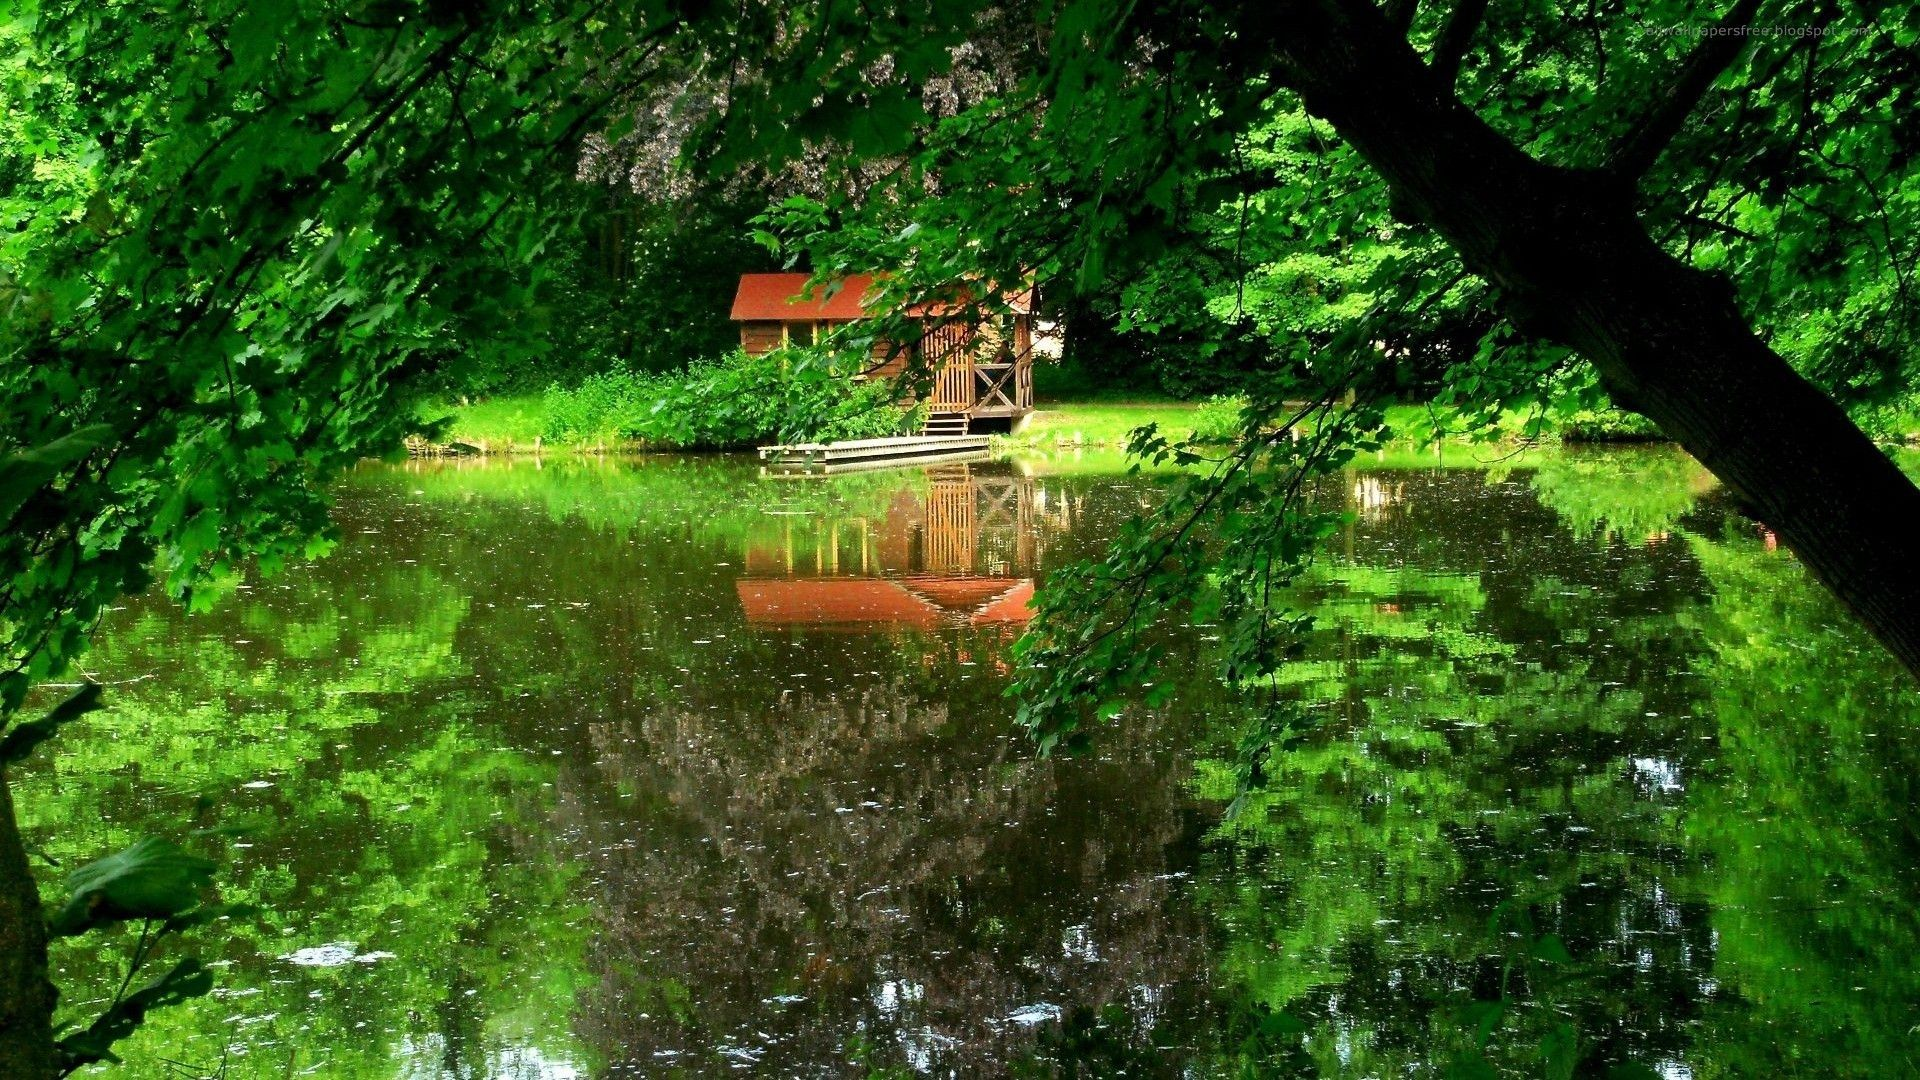 Hd wallpaper nature green - Nature Water Wallpapers Hd Pictures Download